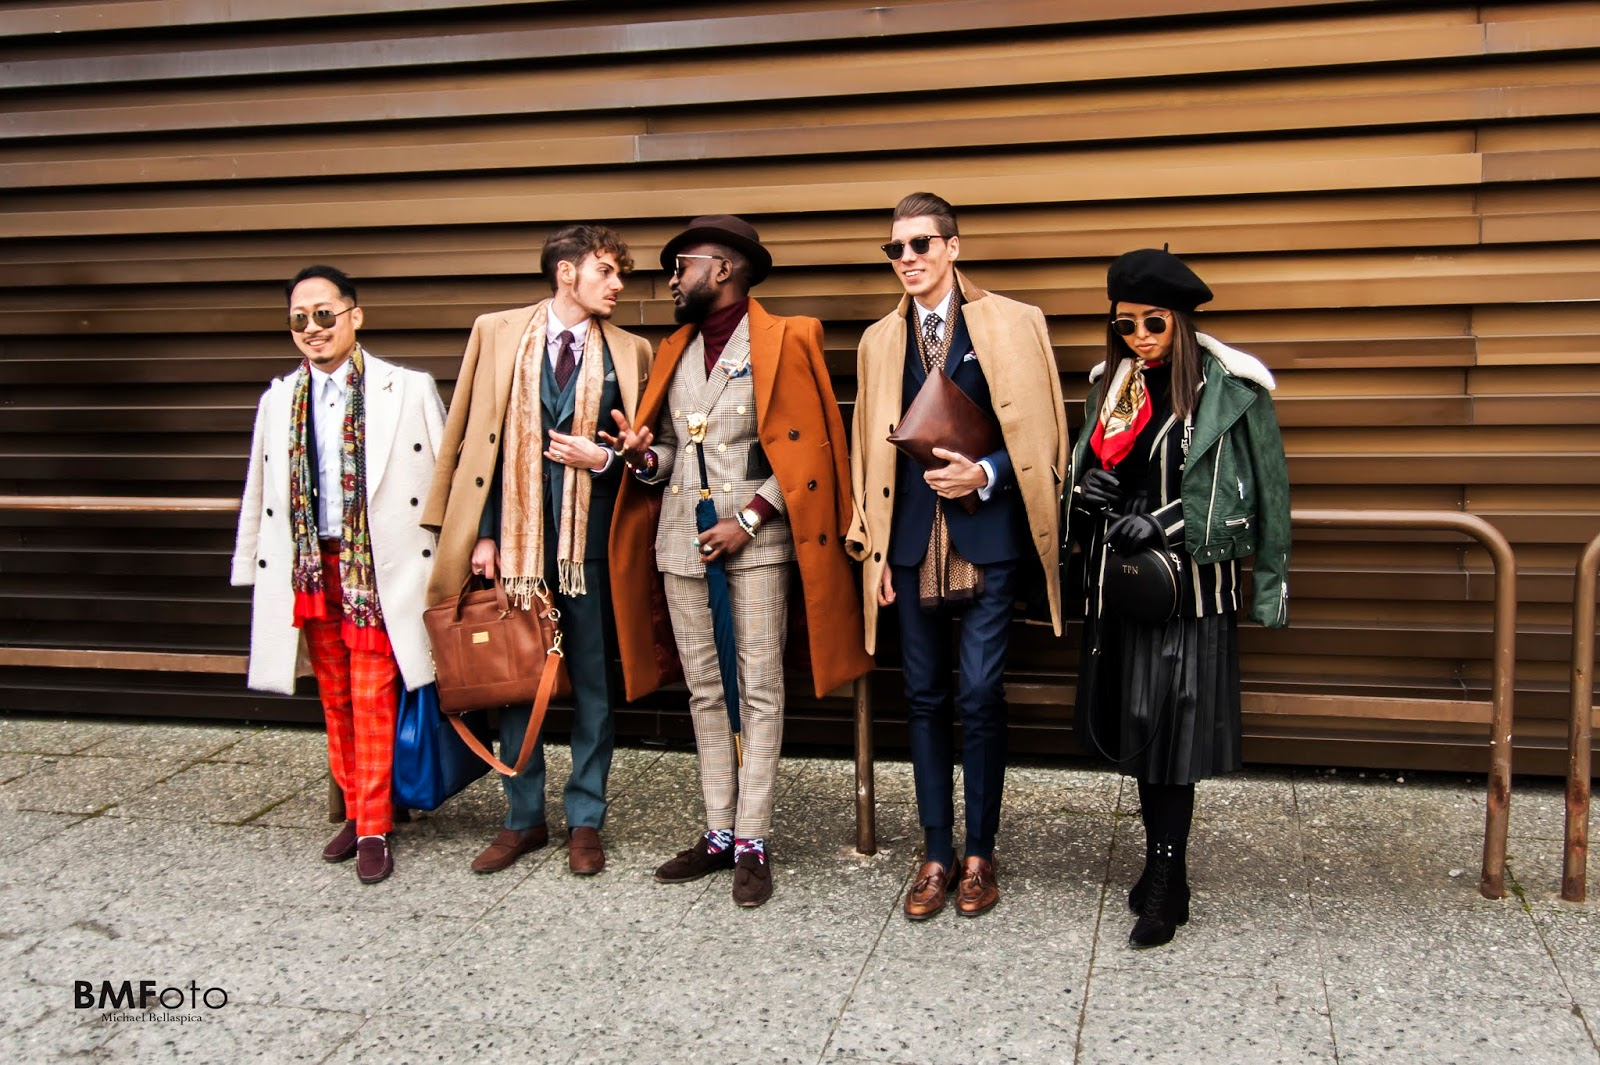 street style photos from Pitti Immagine Uomo 95 on Fashion and Cookies fashion blog